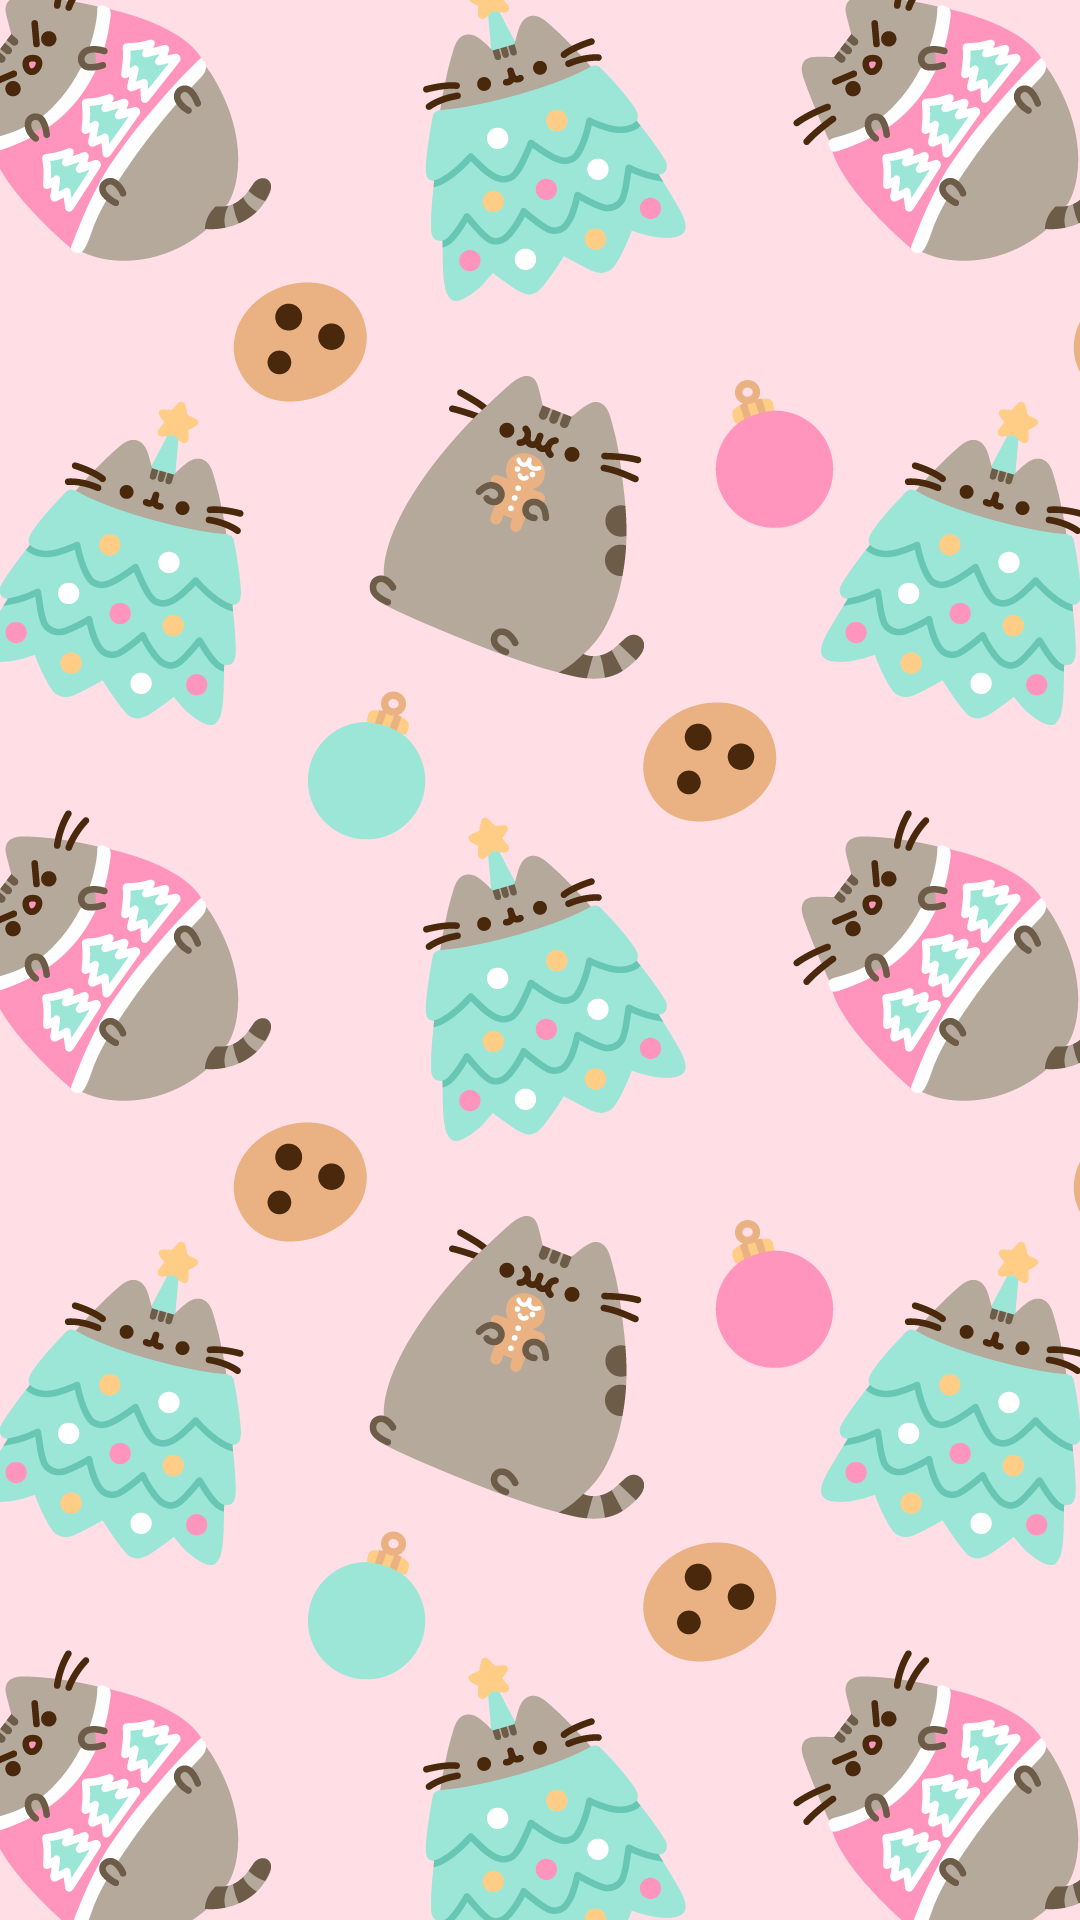 Go Into Gallery And Set As 'wallpaper' - Christmas Pusheen Wallpaper Iphone , HD Wallpaper & Backgrounds